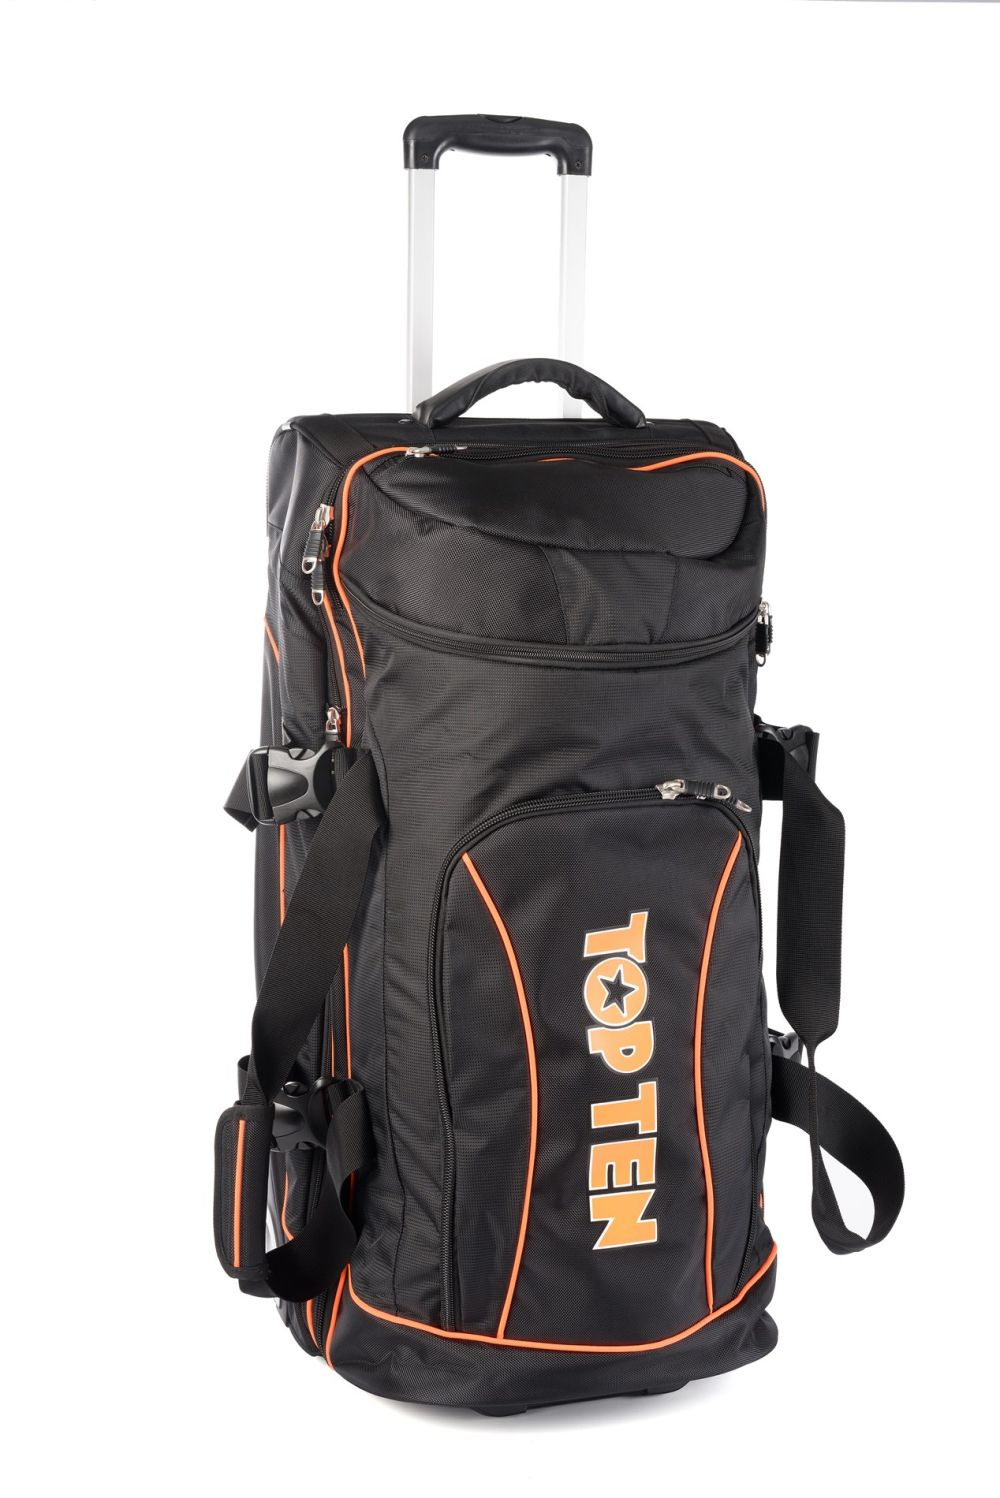 TOP TEN Trolley bag - black/orange